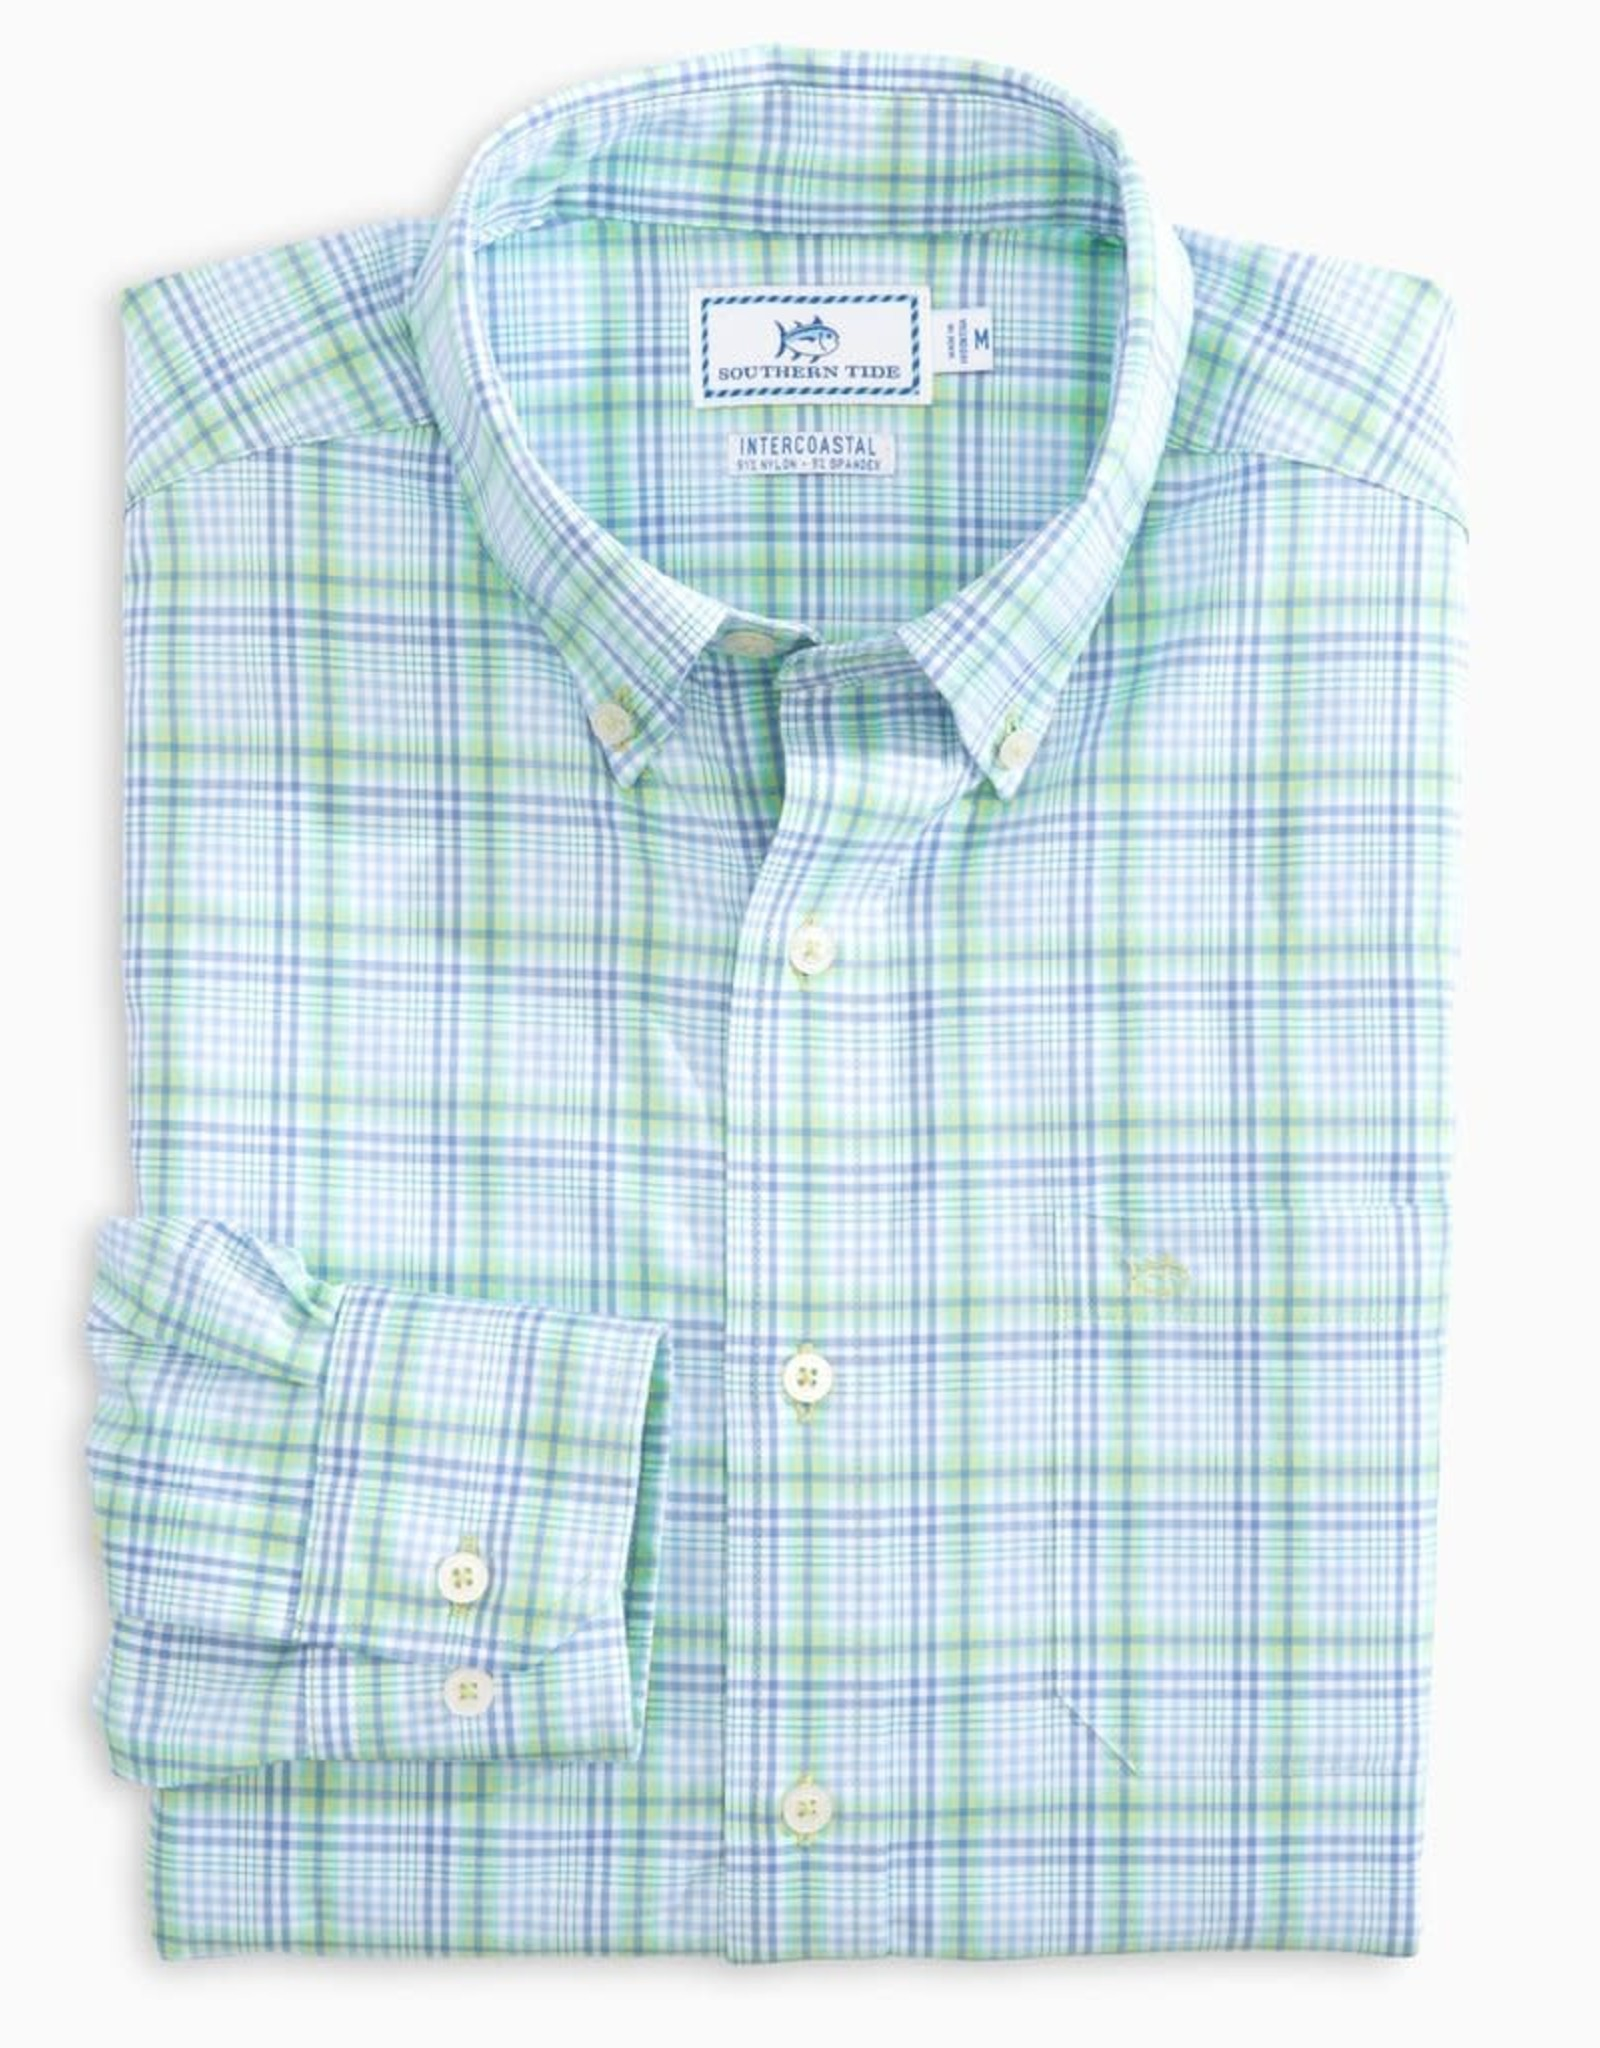 Southern Tide 6087 - Abound Plaid Intercoastal LS Sportshirt